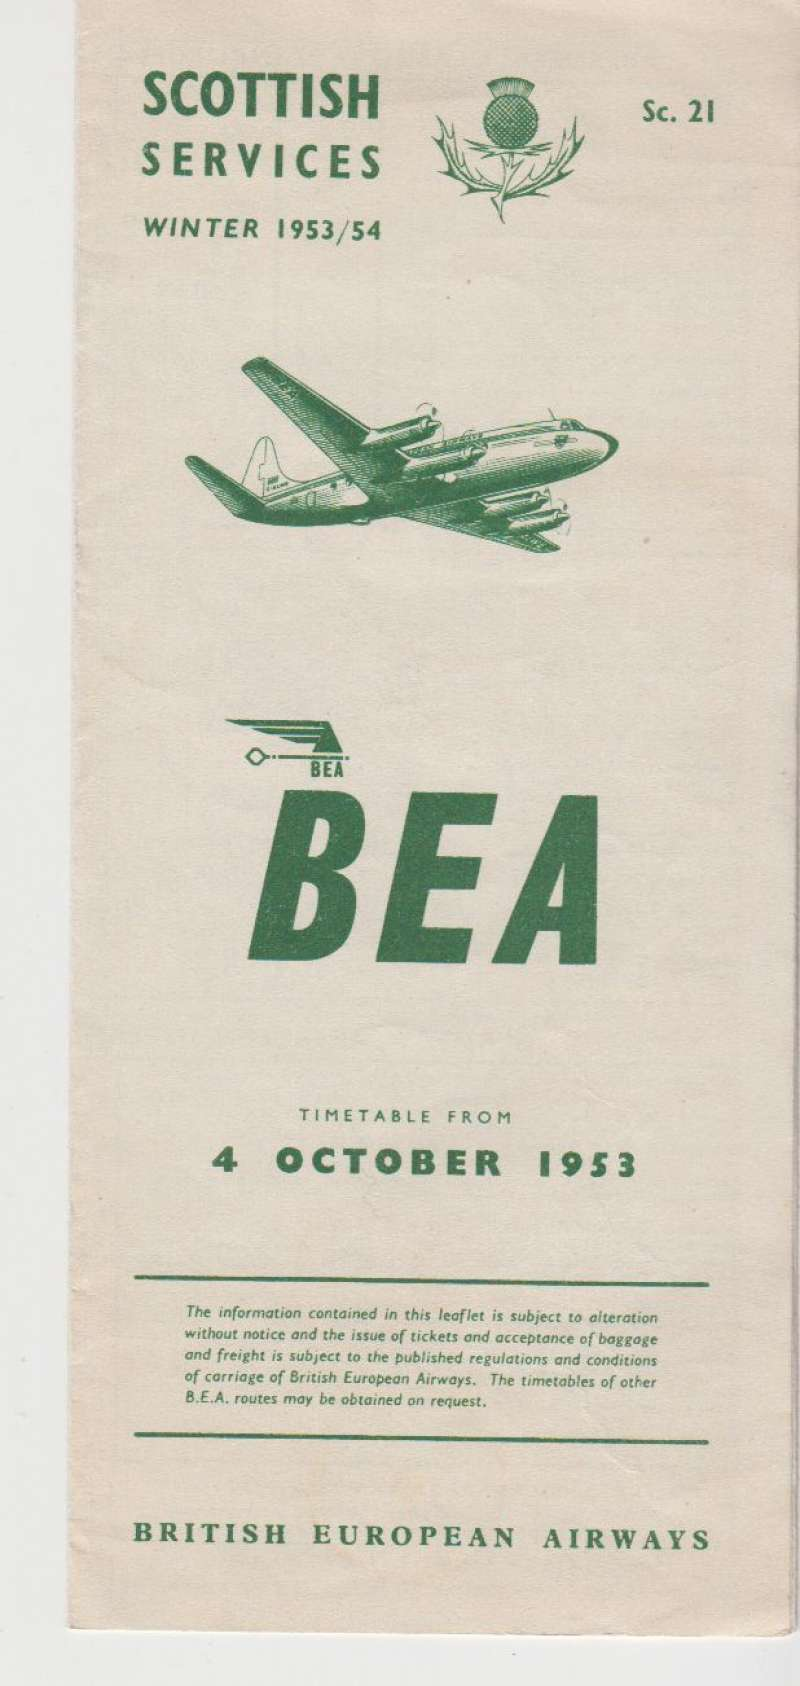 (Ephemera) BEA Scottish Winter Services, timetable, list of fares and map of routes, October 1953, 8 pages, 20x10 cm. Image.